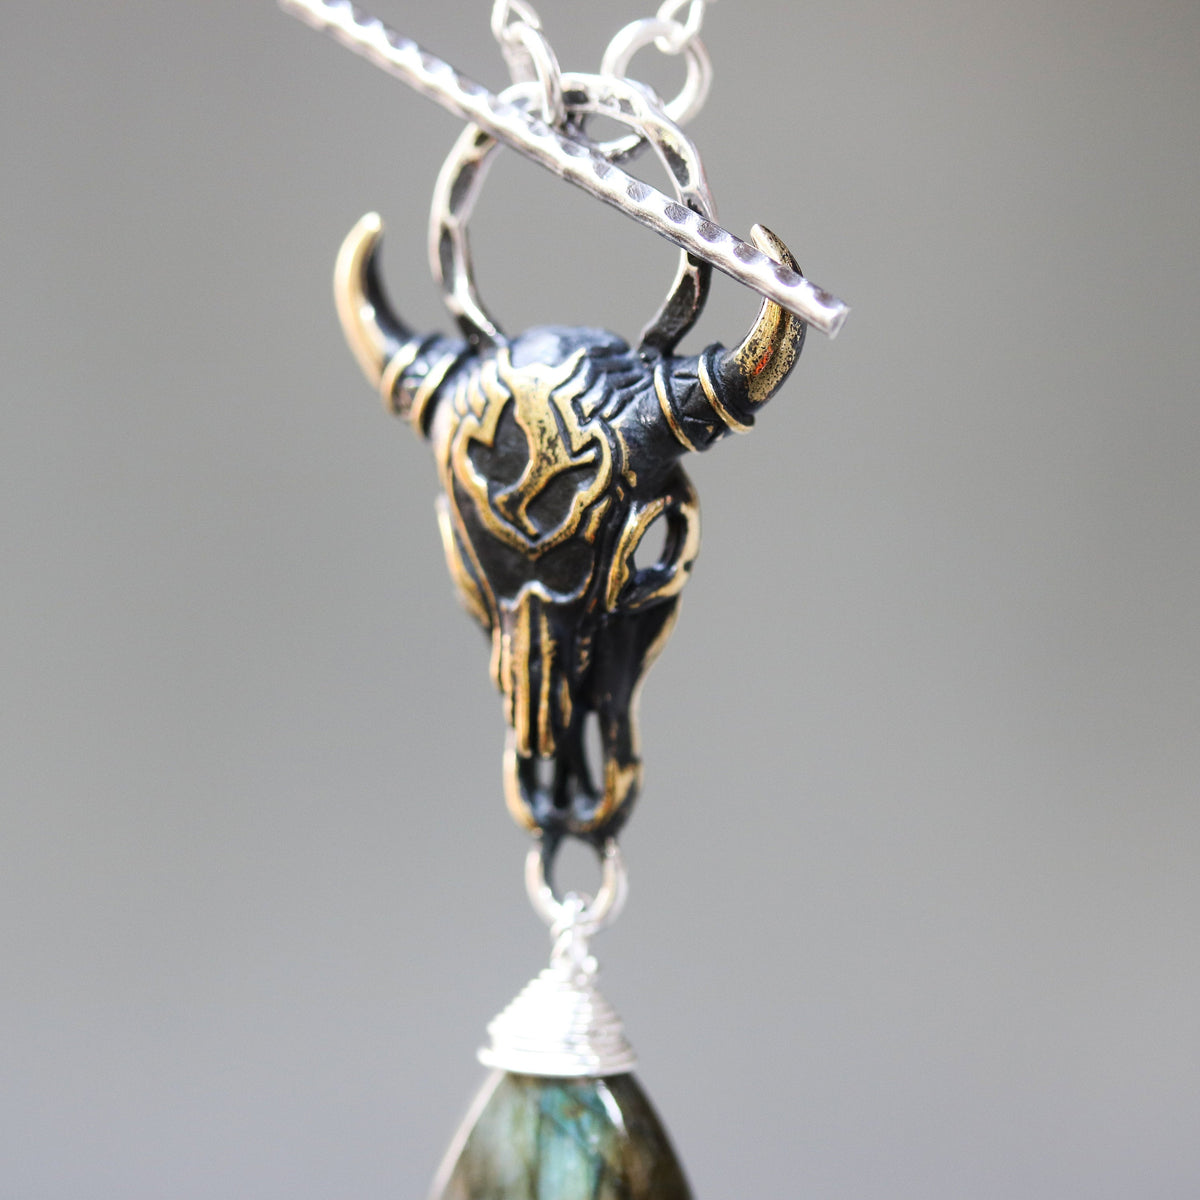 Brass Buffalo shape pendant necklace and labradorite gemstone with labradorite beads and silver ring secondary on sterling silver chain(FBA)